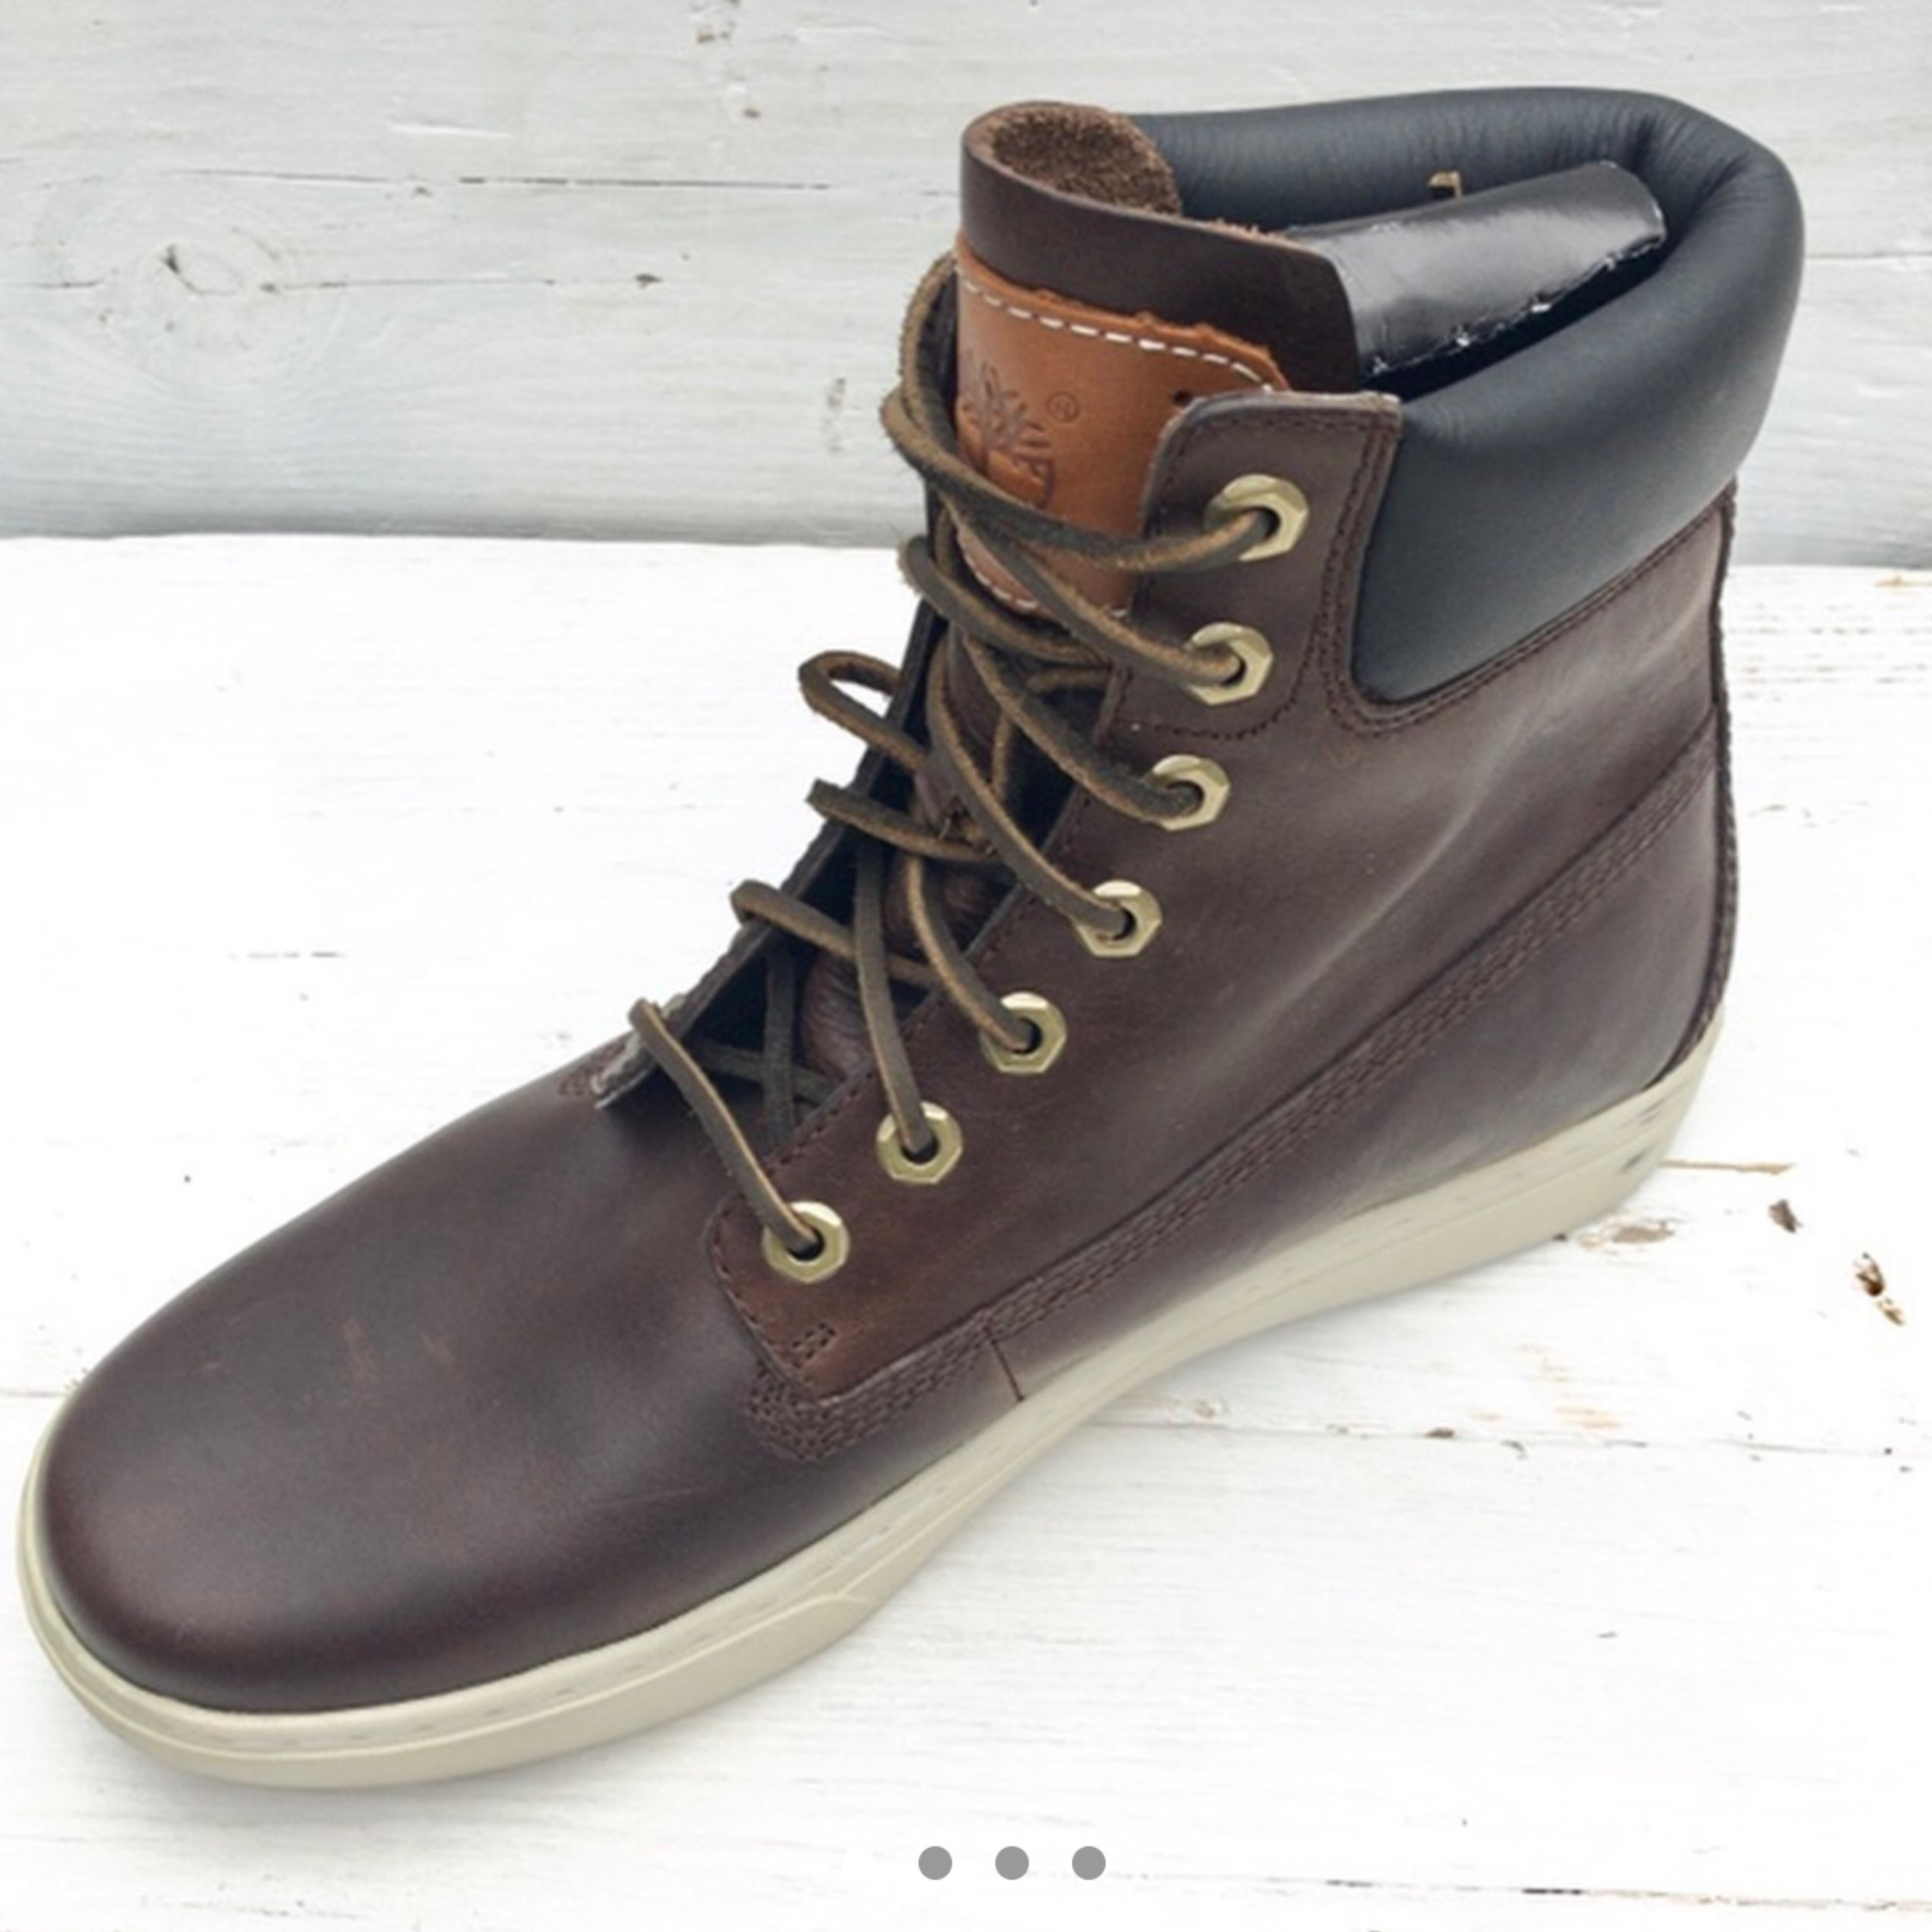 47748542299 Brand New Timberland Boots / Shoes